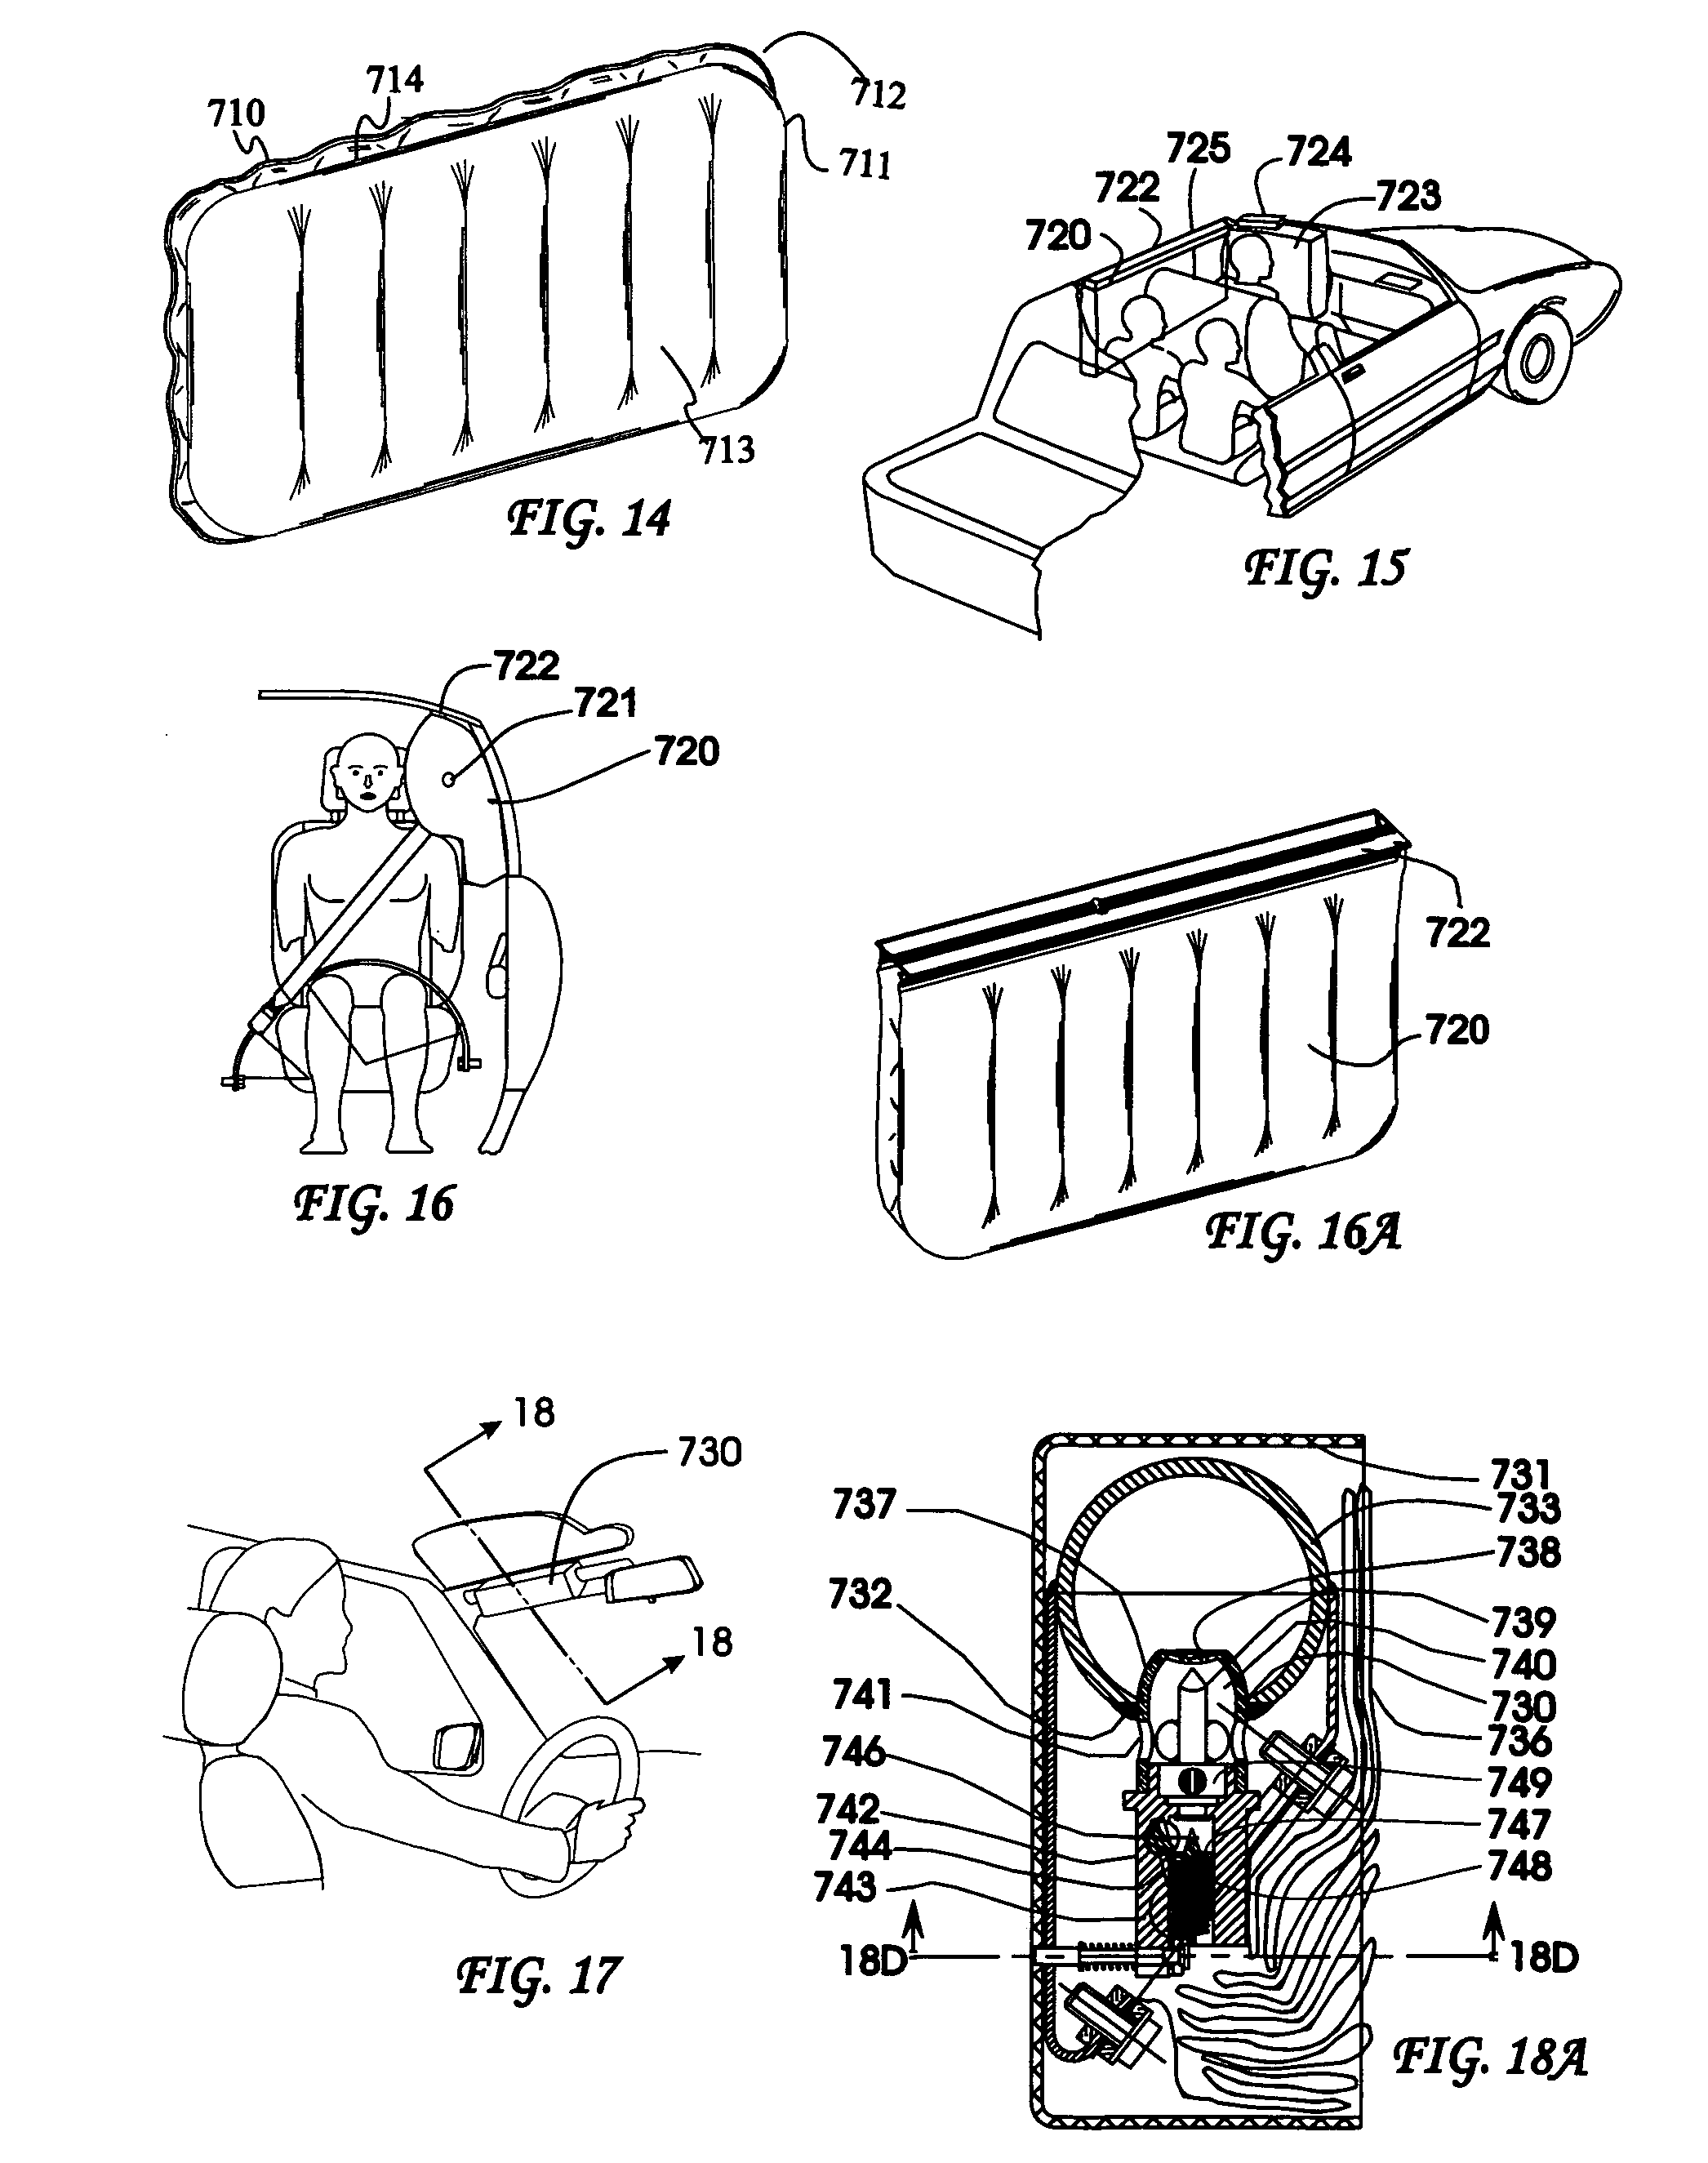 Patent Us 7338069 B2 Toyota 22r Timing Chain Marks Likewise 1988 22re Vacuum Diagram